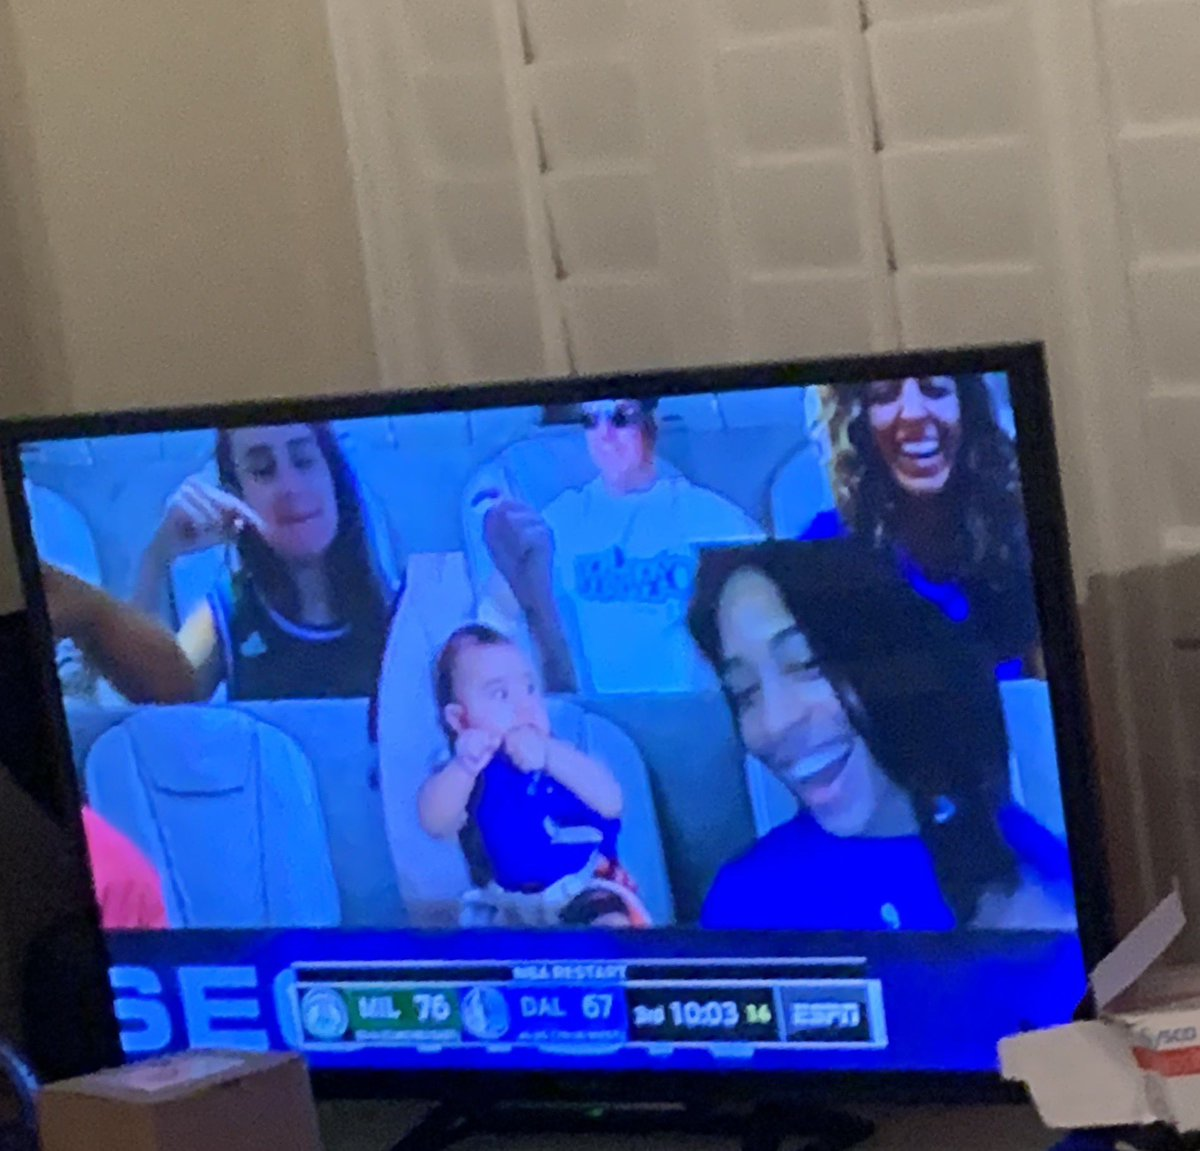 When you are watching MIL vs. DAL game and @OMG_itsizzyb pop up on the screen 😂😂 https://t.co/uWh4PzFbHp